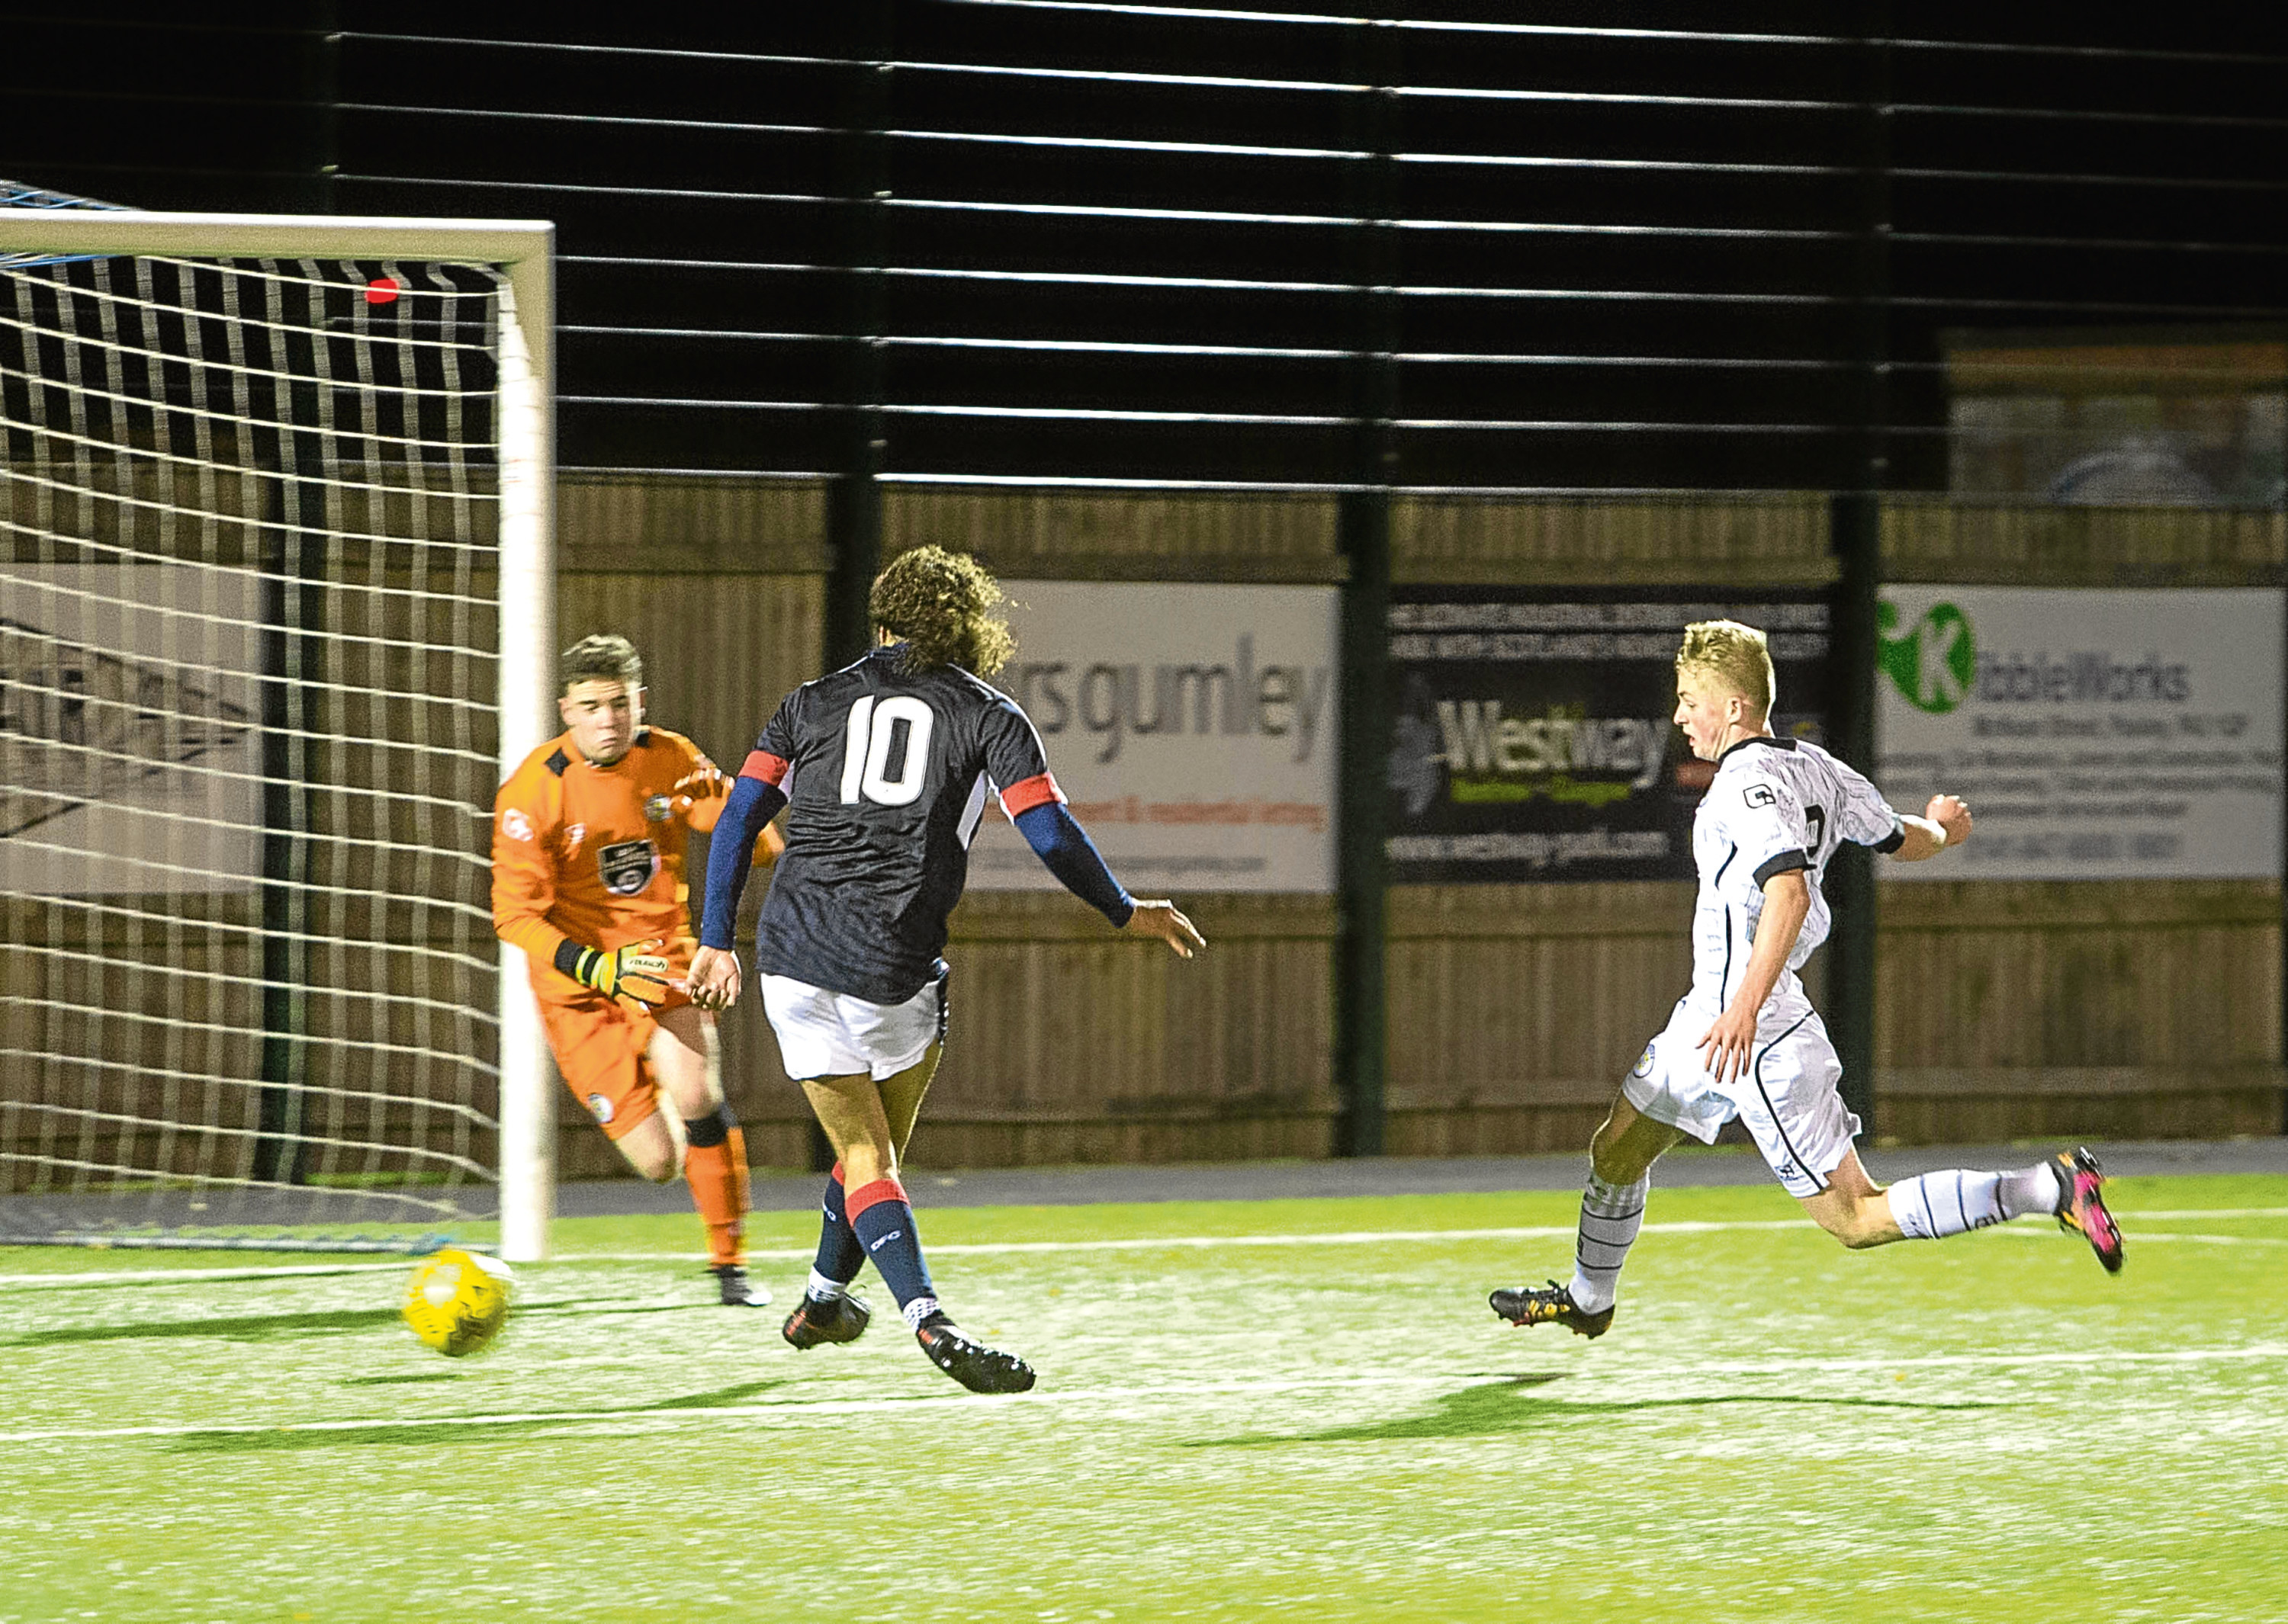 Dutchman Yordi Teijsse is pushing for a starting place after bagging a brace in Dundee's 4-1 Development Squad win against St Mirren (above).